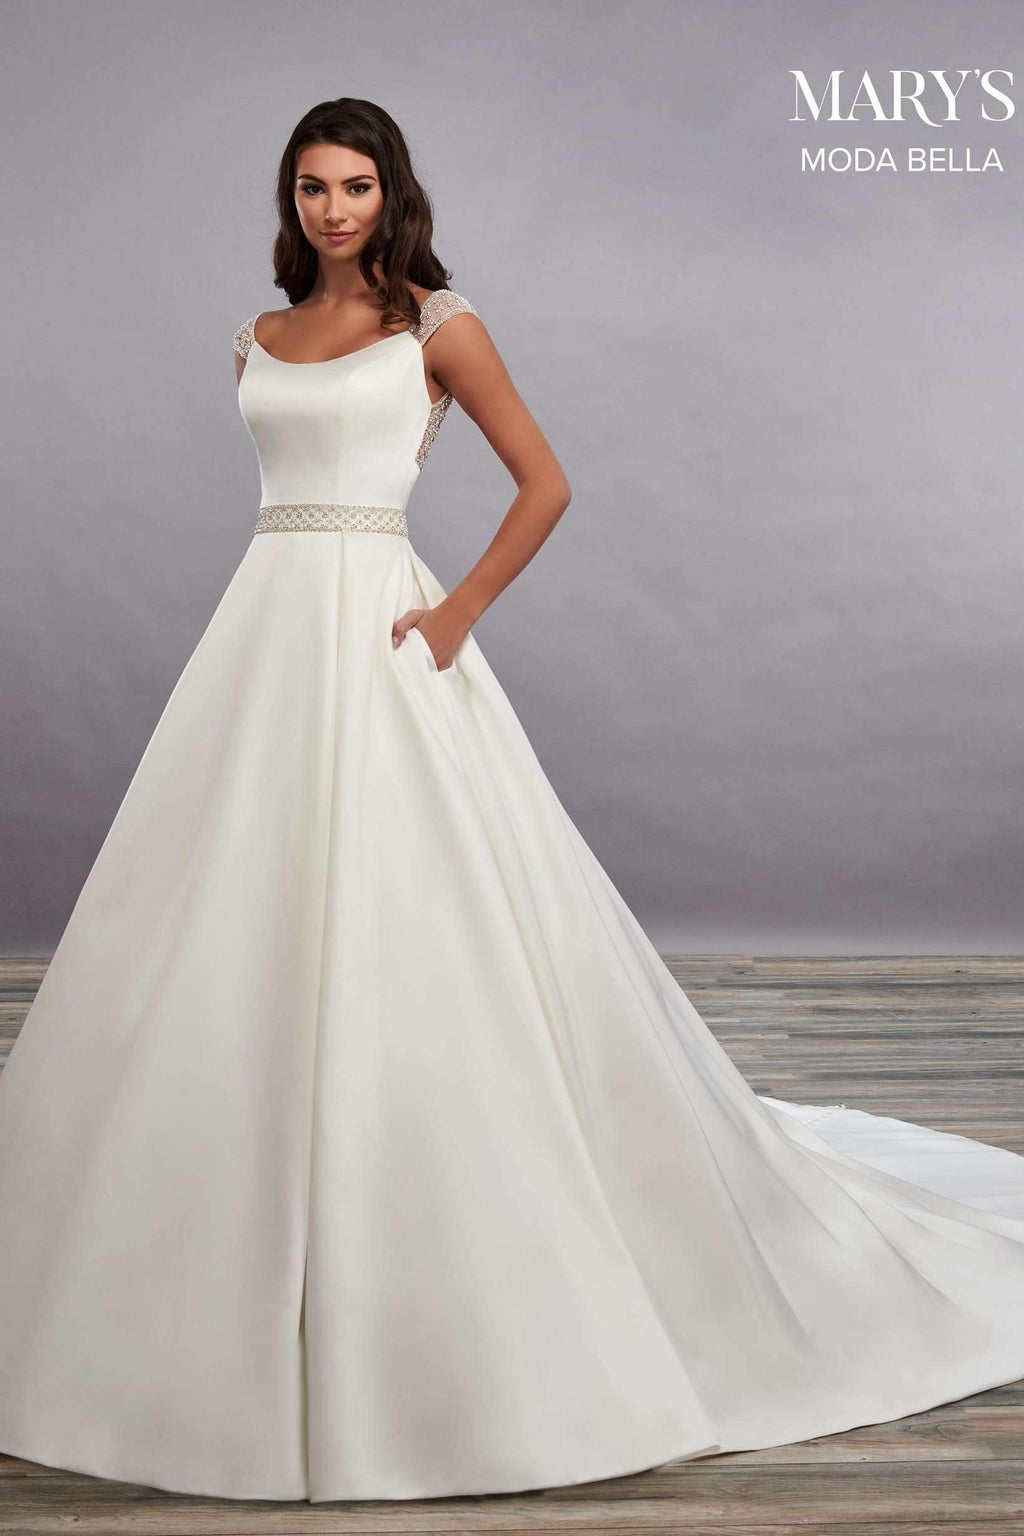 MARY'S BRIDAL - Carla - Adore Bridal and Occasion Wear